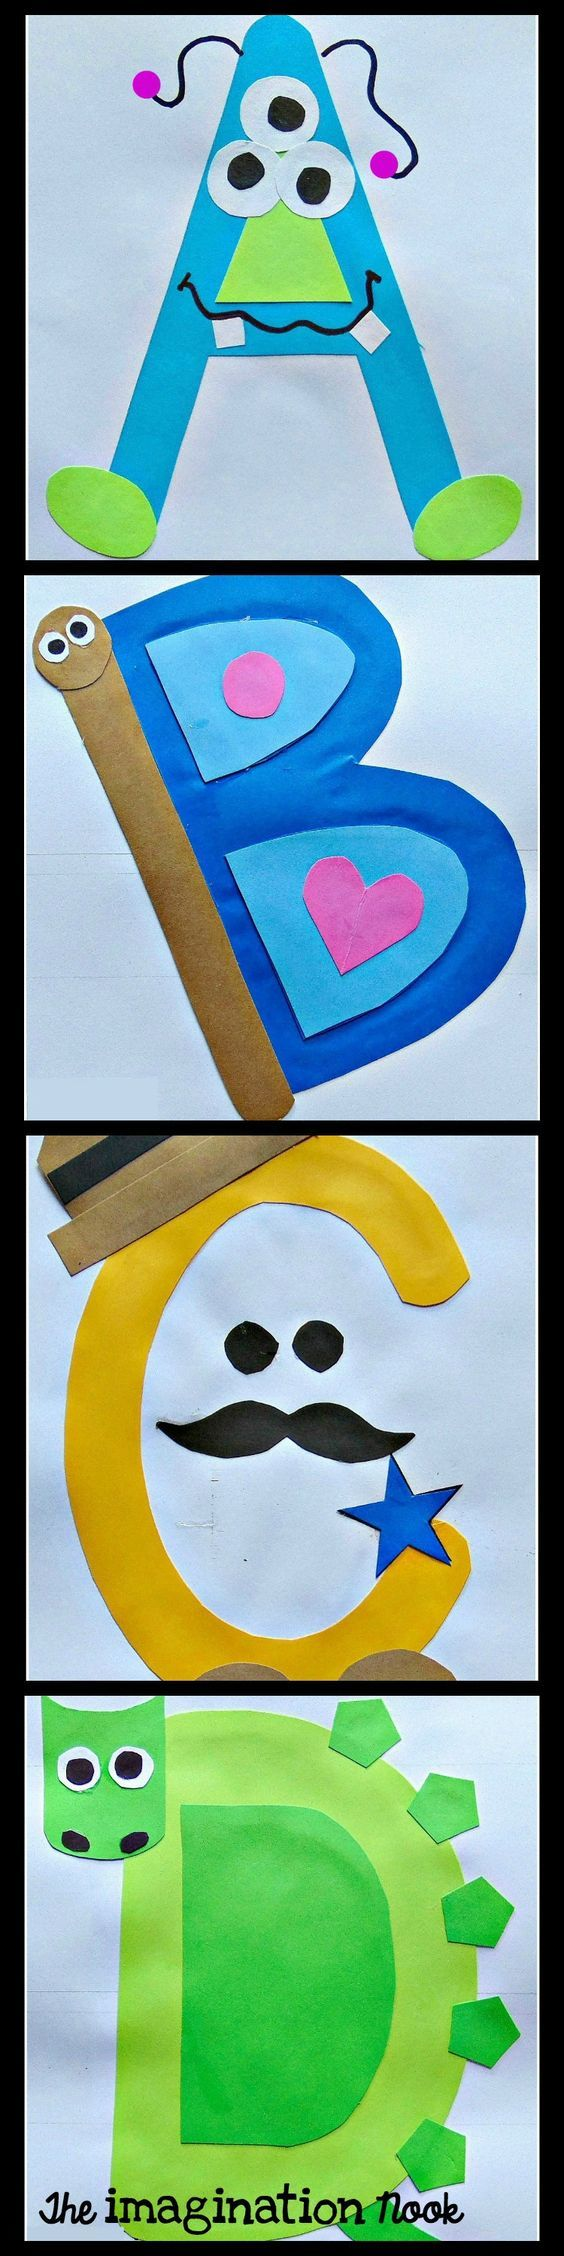 Letter s arts and crafts for preschoolers - Engaging Alphabet Book From A To Z Fun To Make Capital Letter Crafts